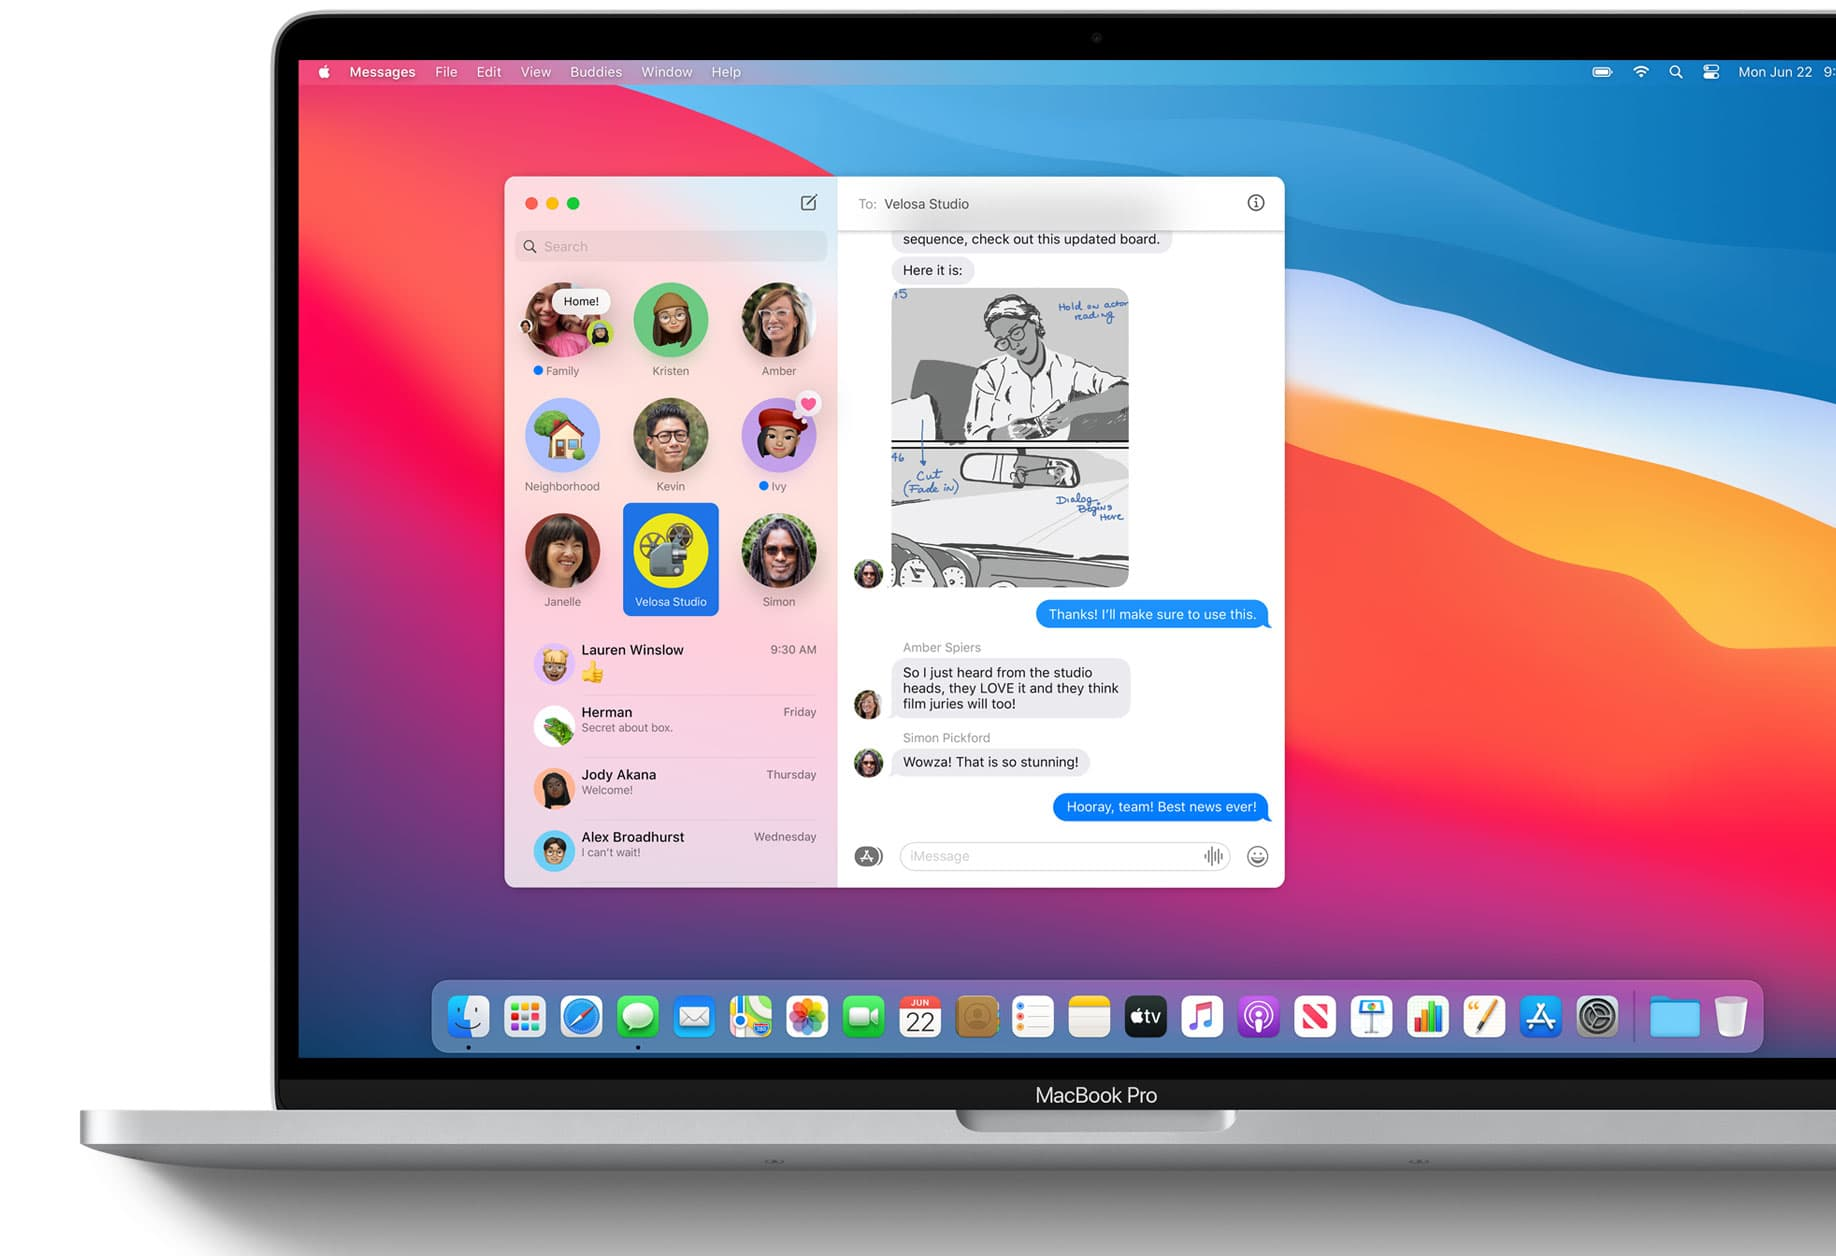 Apple Releases Macos Big Sur With An All New Experience Control Center Improved Messages And More